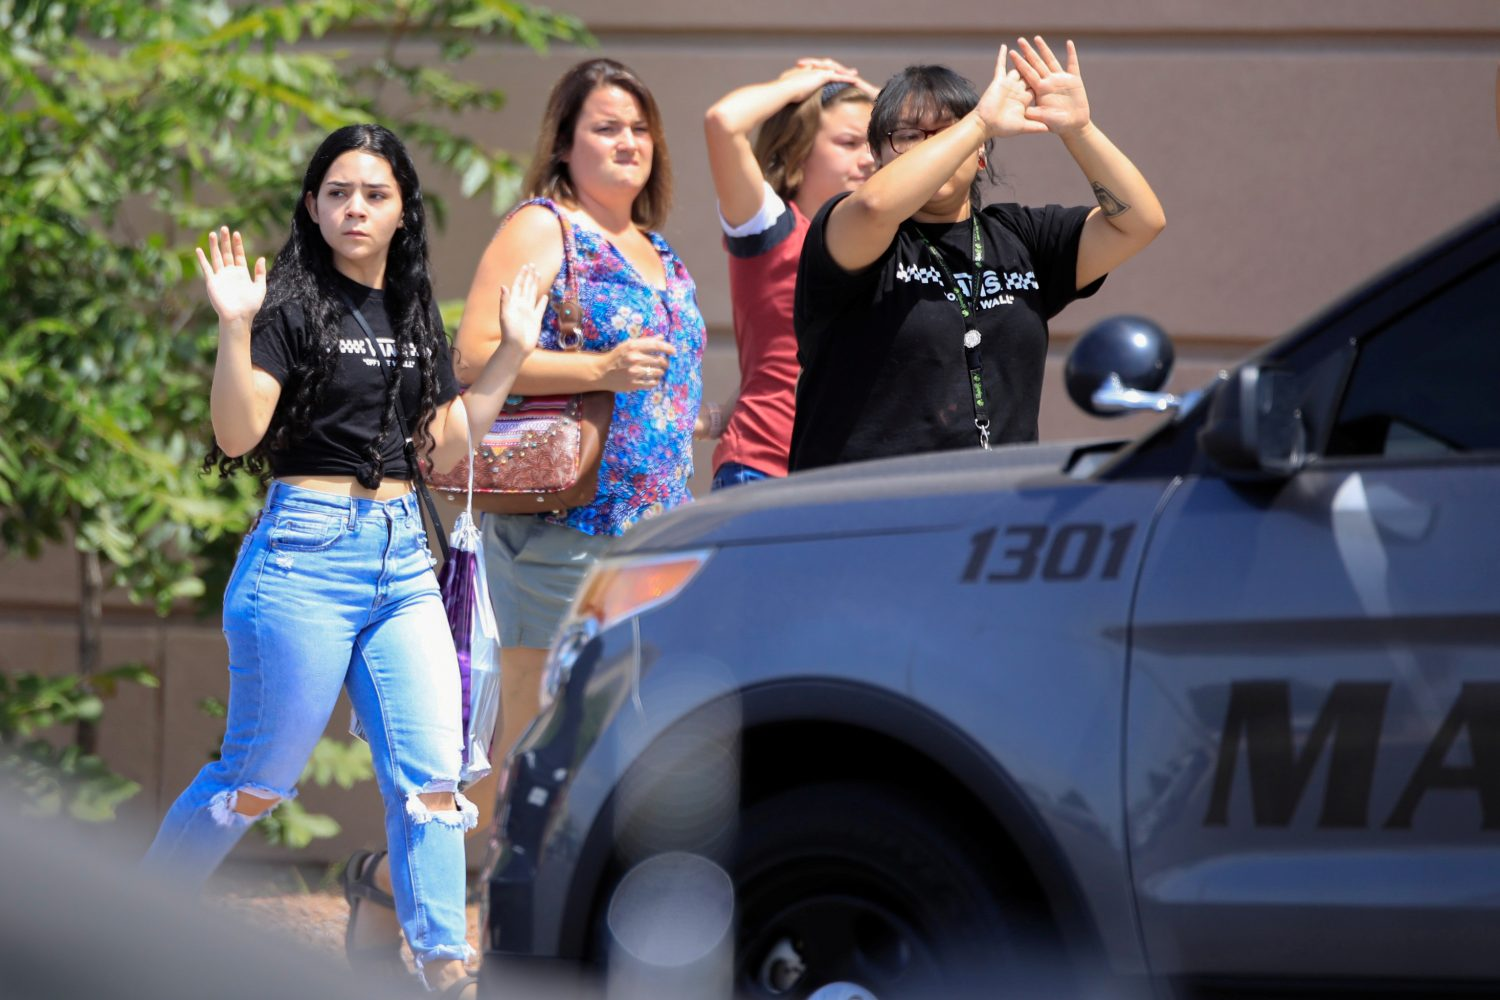 Shoppers exit with their hands up after a mass shooting at a Walmart in El Paso, Texas, U.S. August 3, 2019. REUTERS/Jorge Salgado